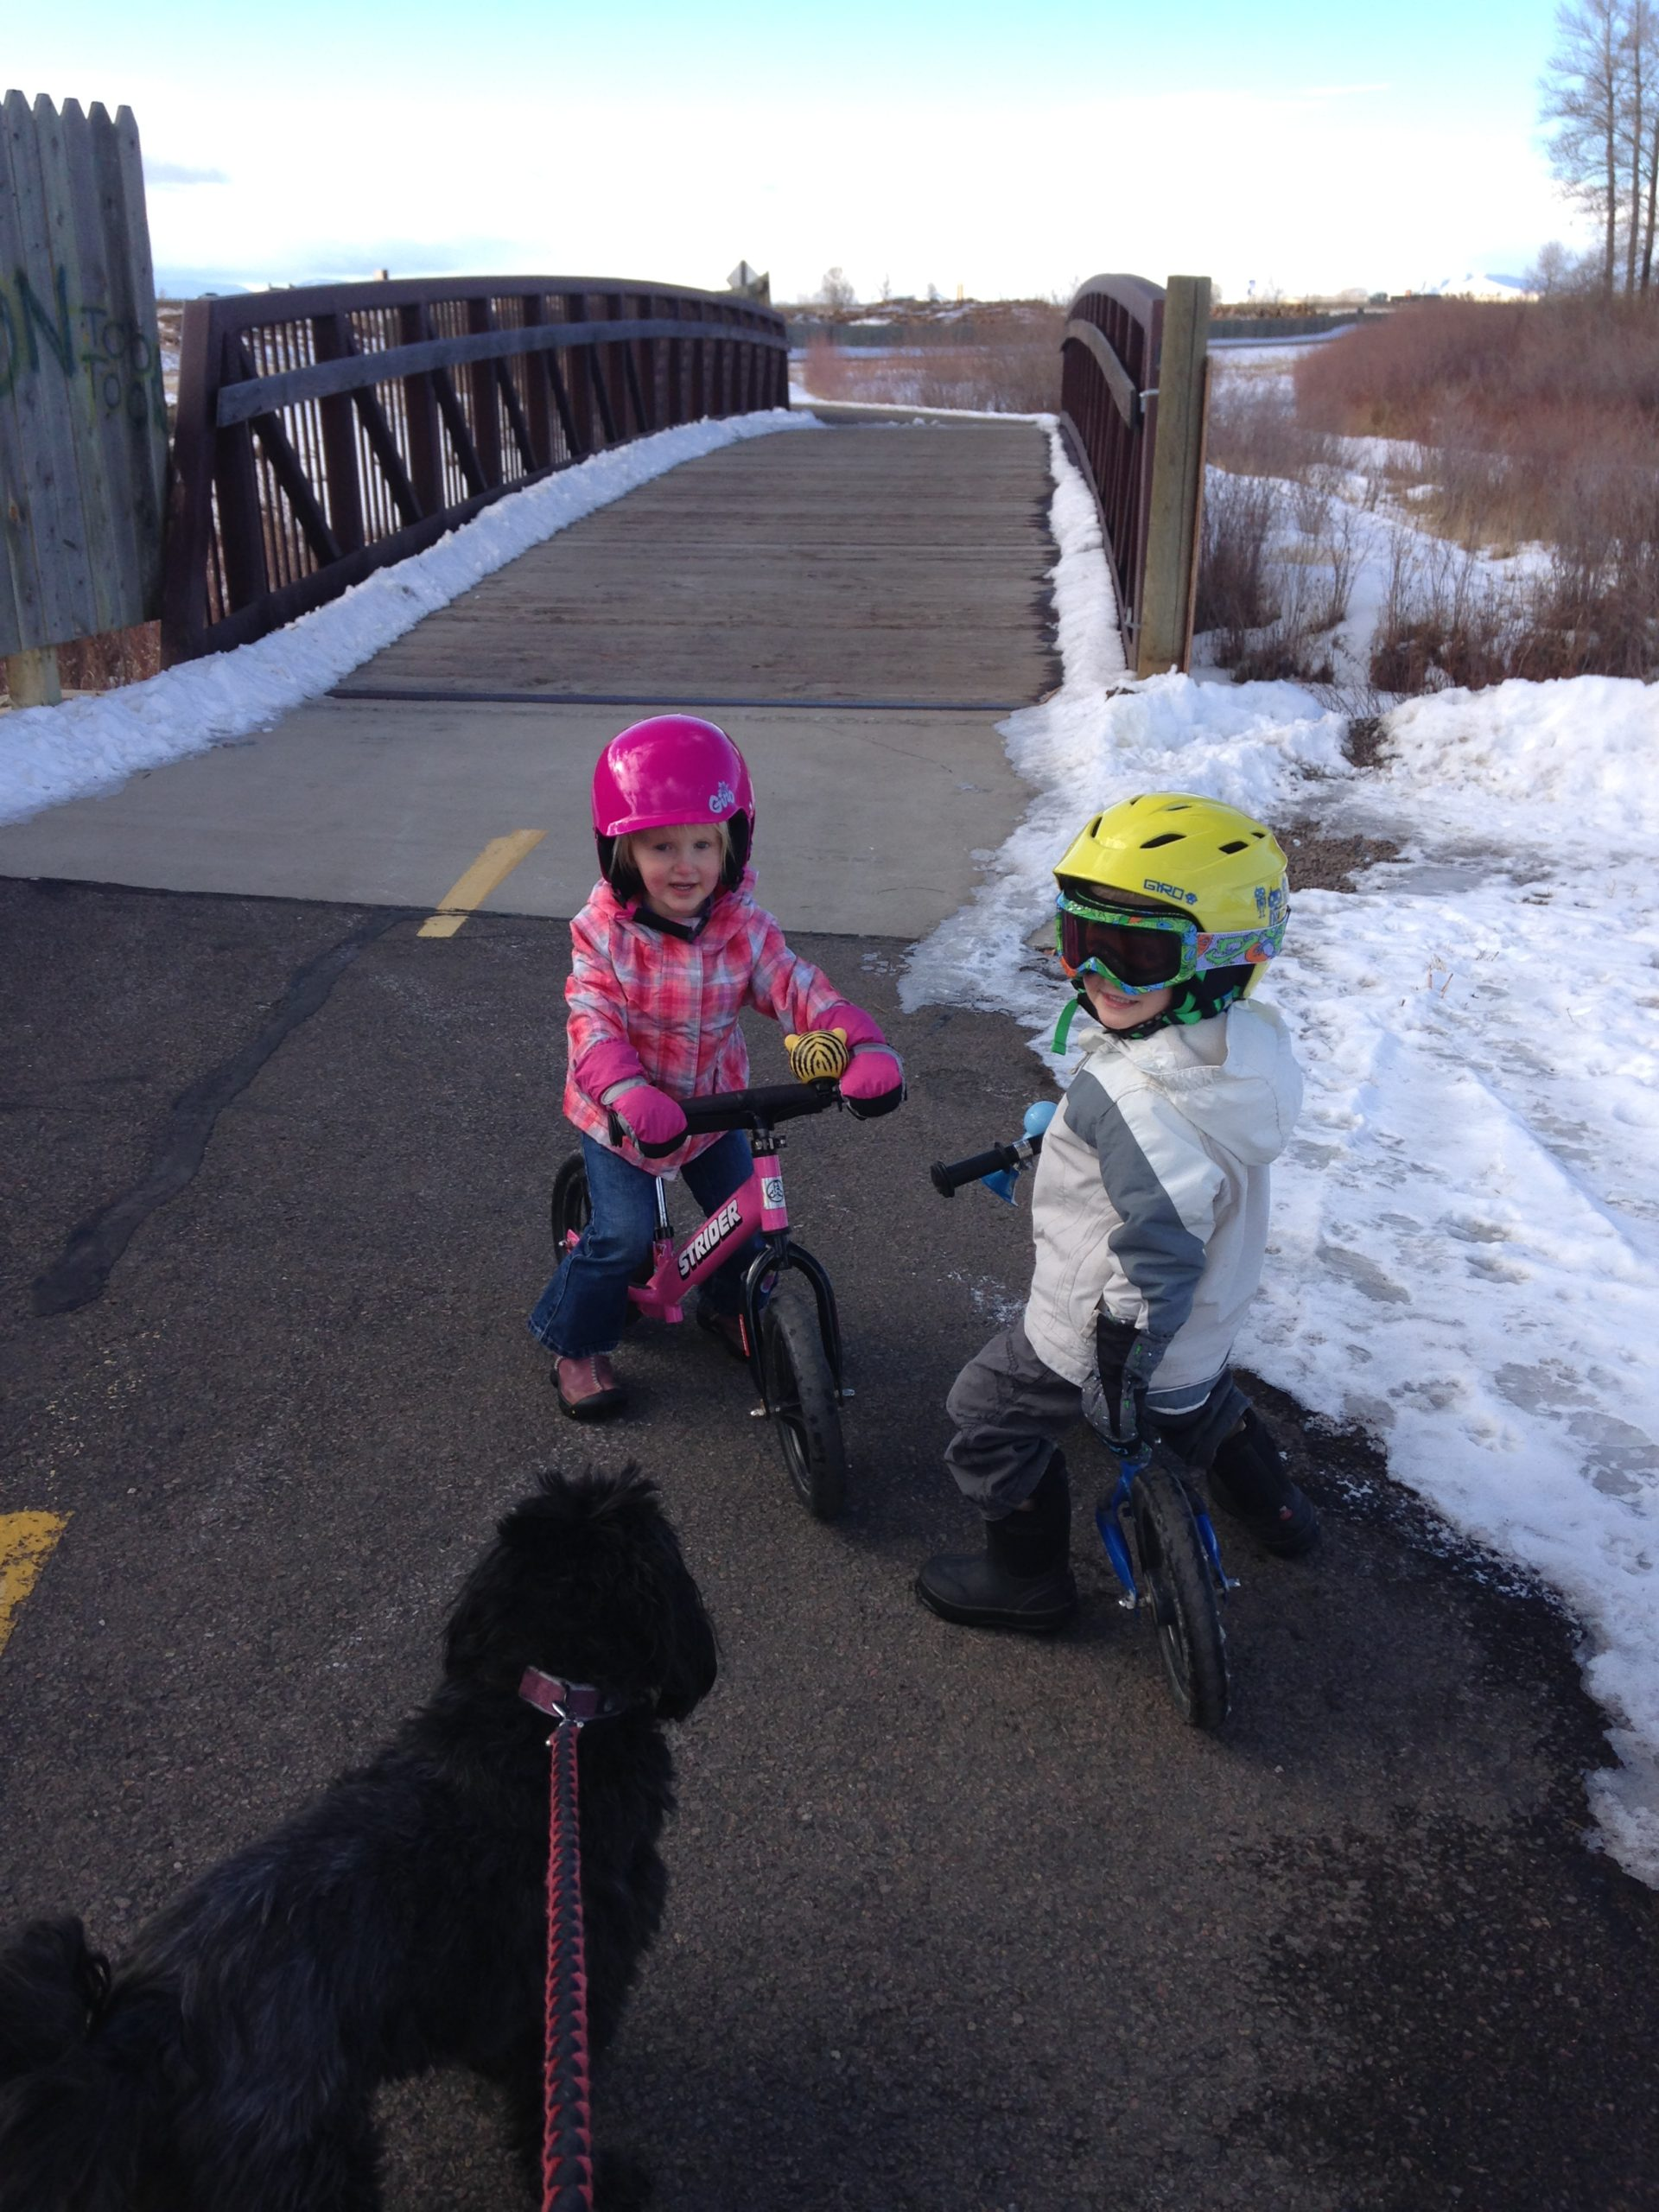 little girl on pink Strider Bike and little boy on blue Strider Bike